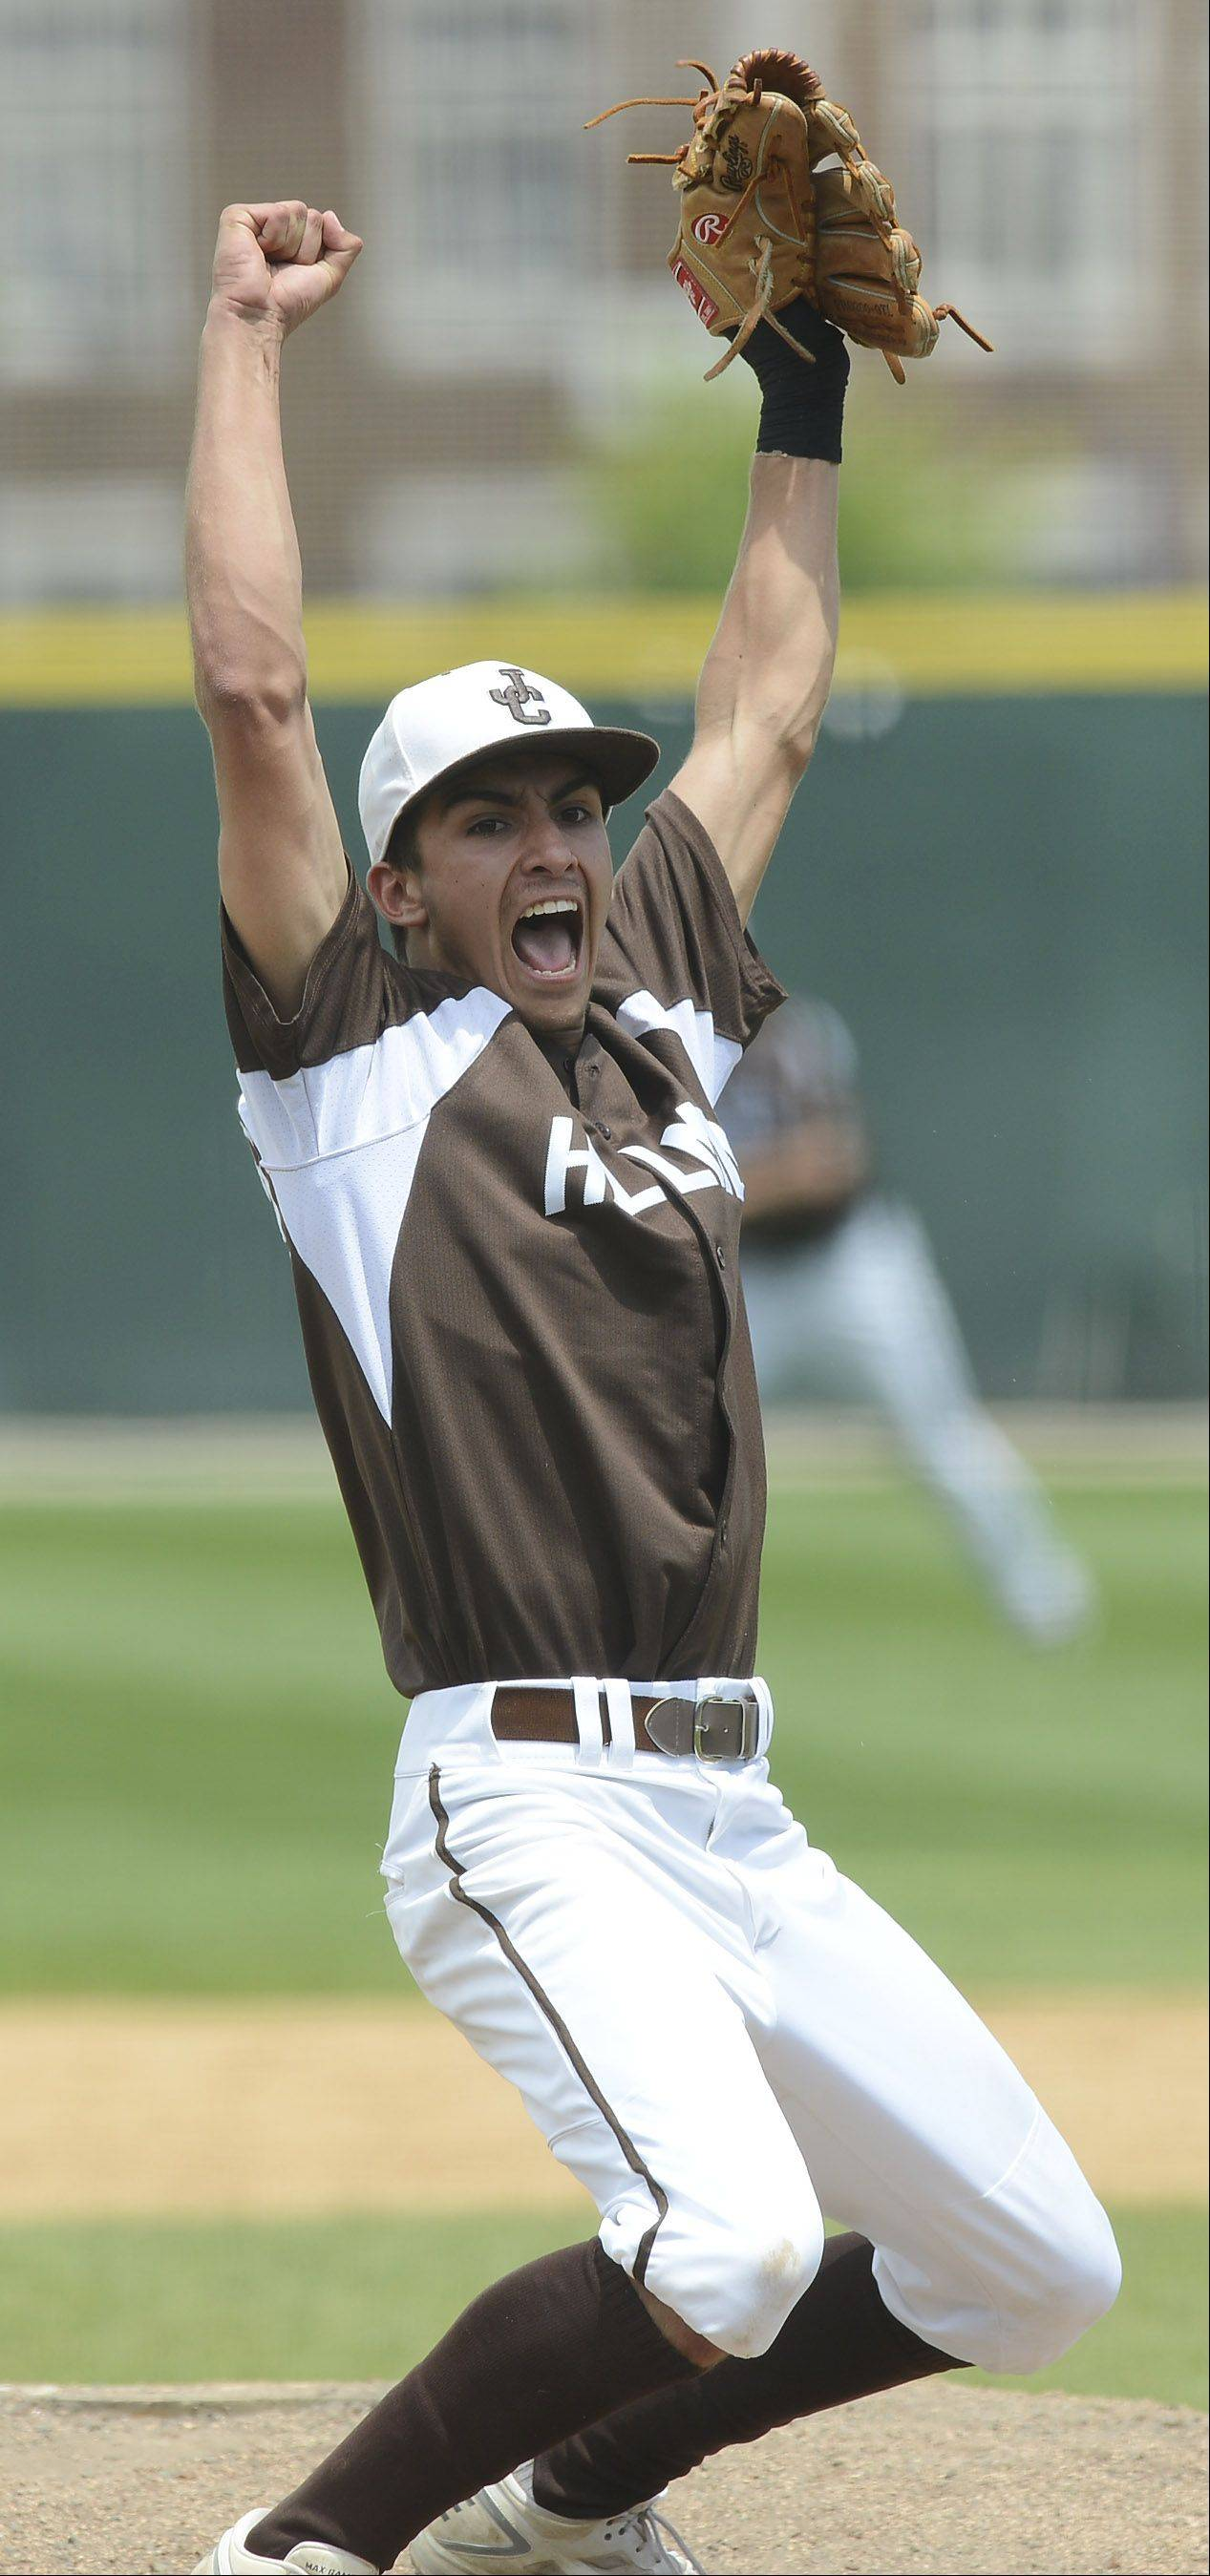 Joliet Catholic pitcher Nick Dalesandro reacts after getting the final out of his team's victory over St. Francis during the Class 3A state baseball championship game at Silver Cross Field in Joliet Saturday.